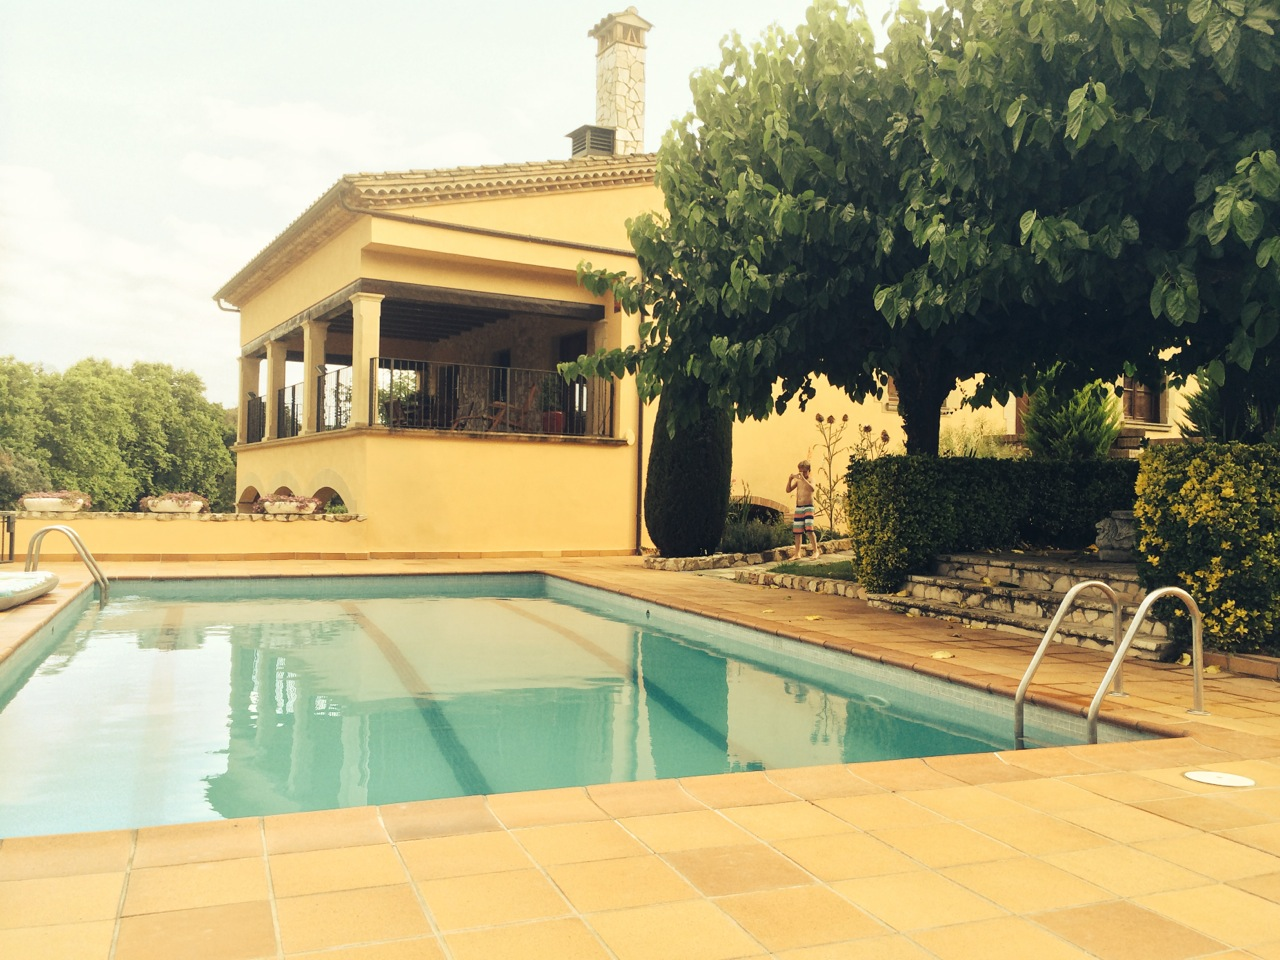 Ferienhaus Mit Pool In Spanien Ferienhaus Pool Geheimtipp Spanien Cool Places To Stay